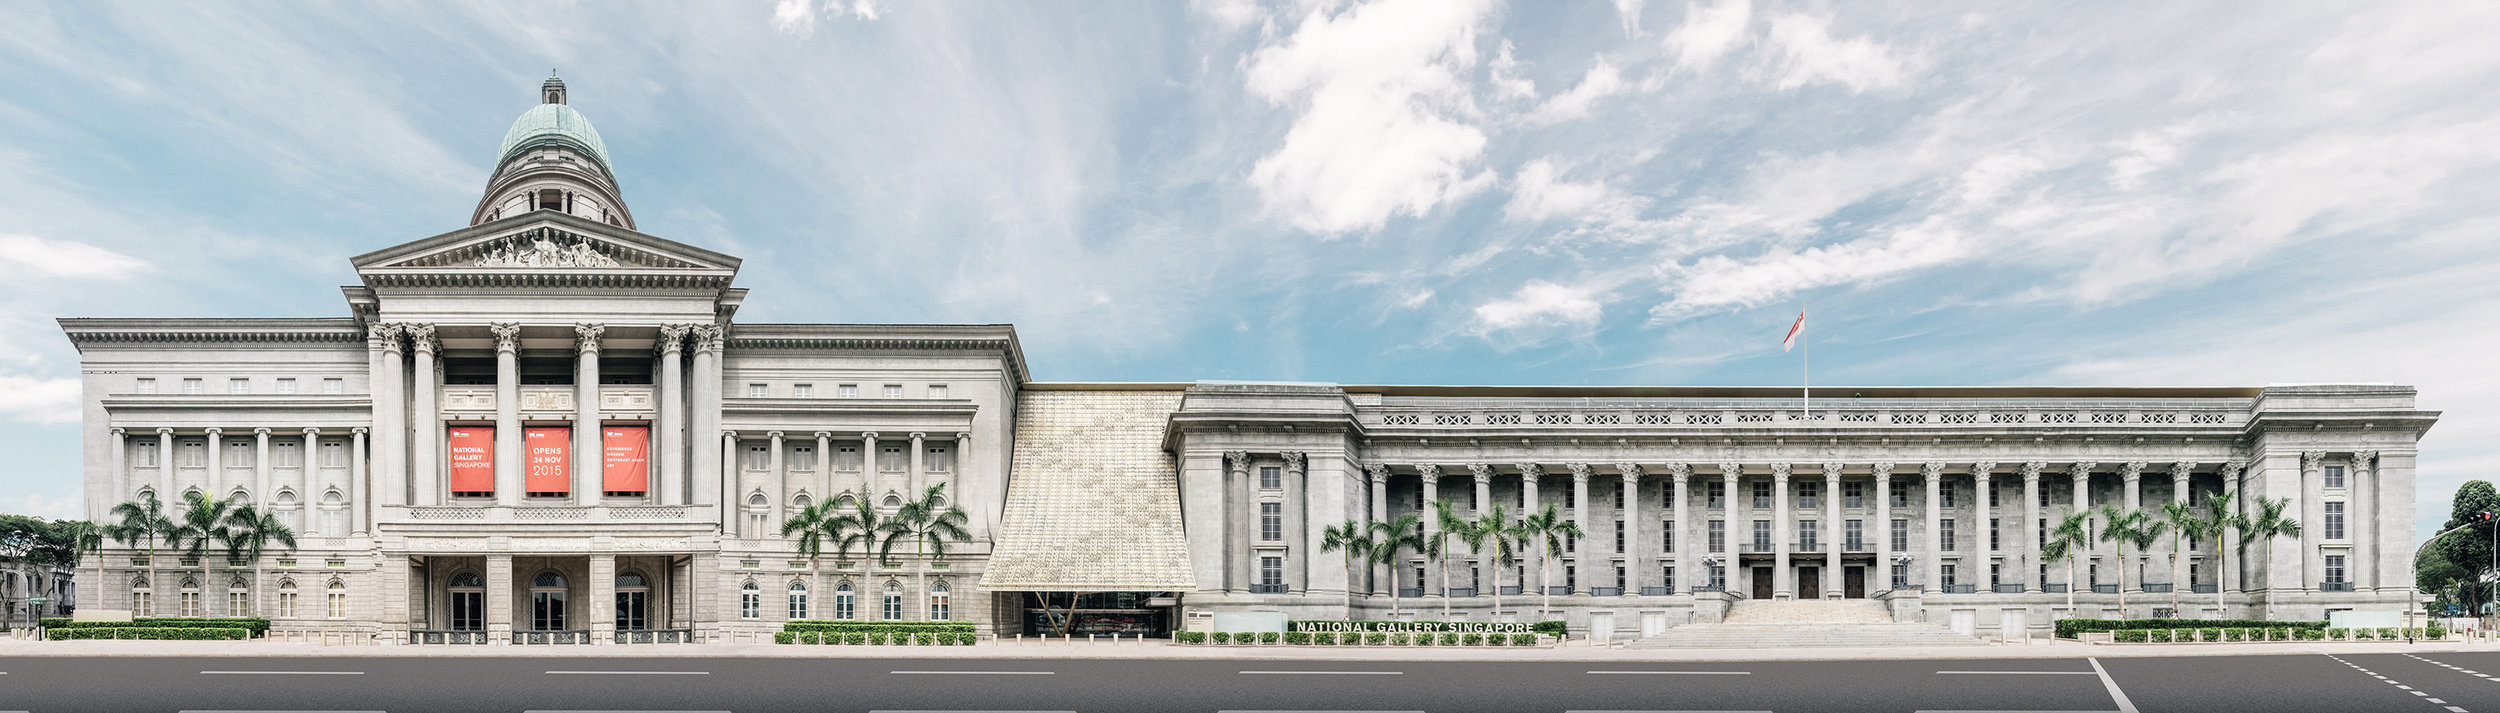 Exterior of the National Gallery of Singapore